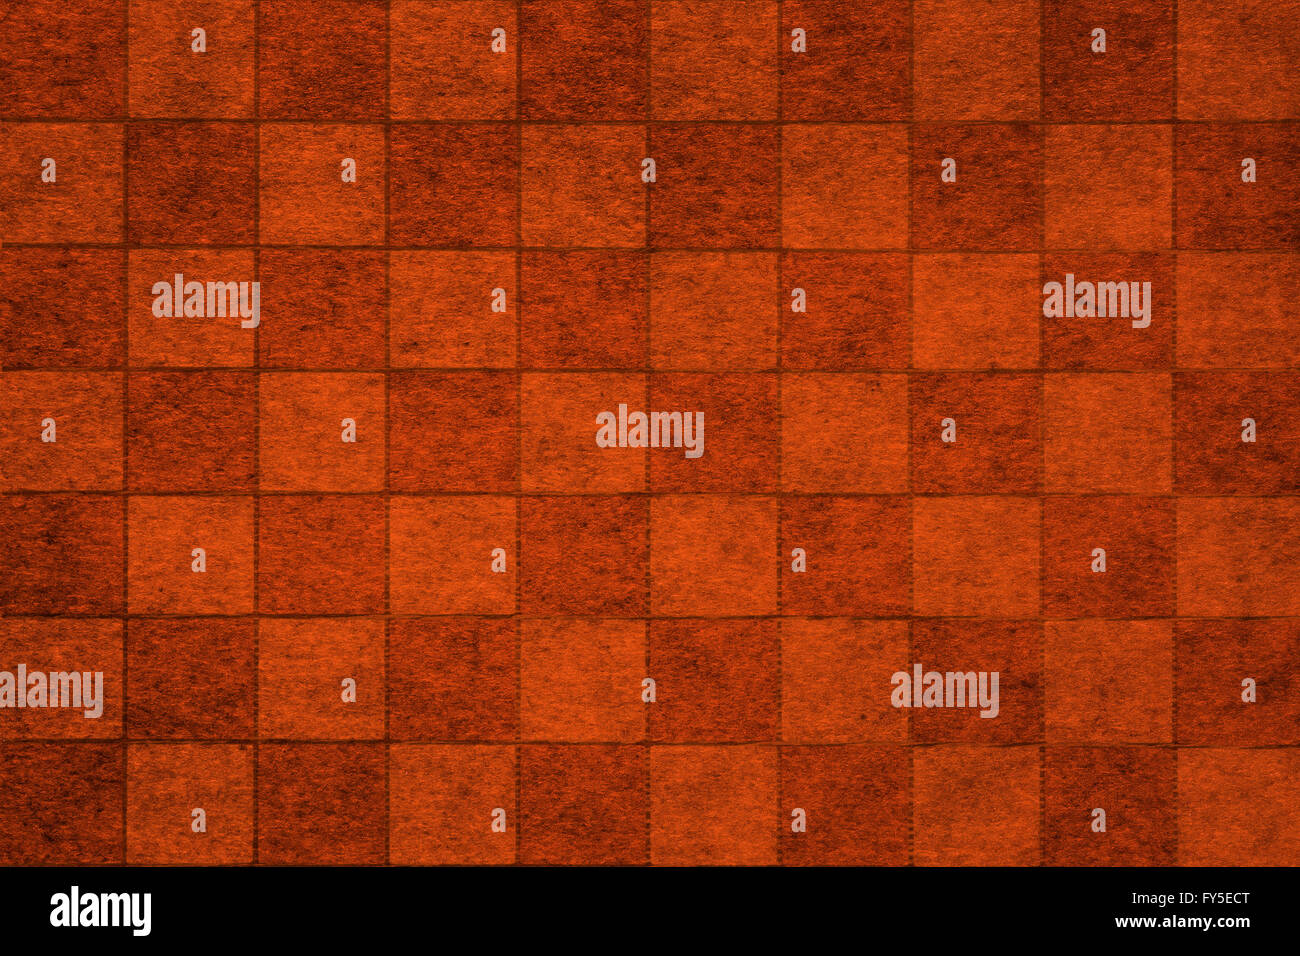 Brown grungy chessboard background with complex texture - Stock Image